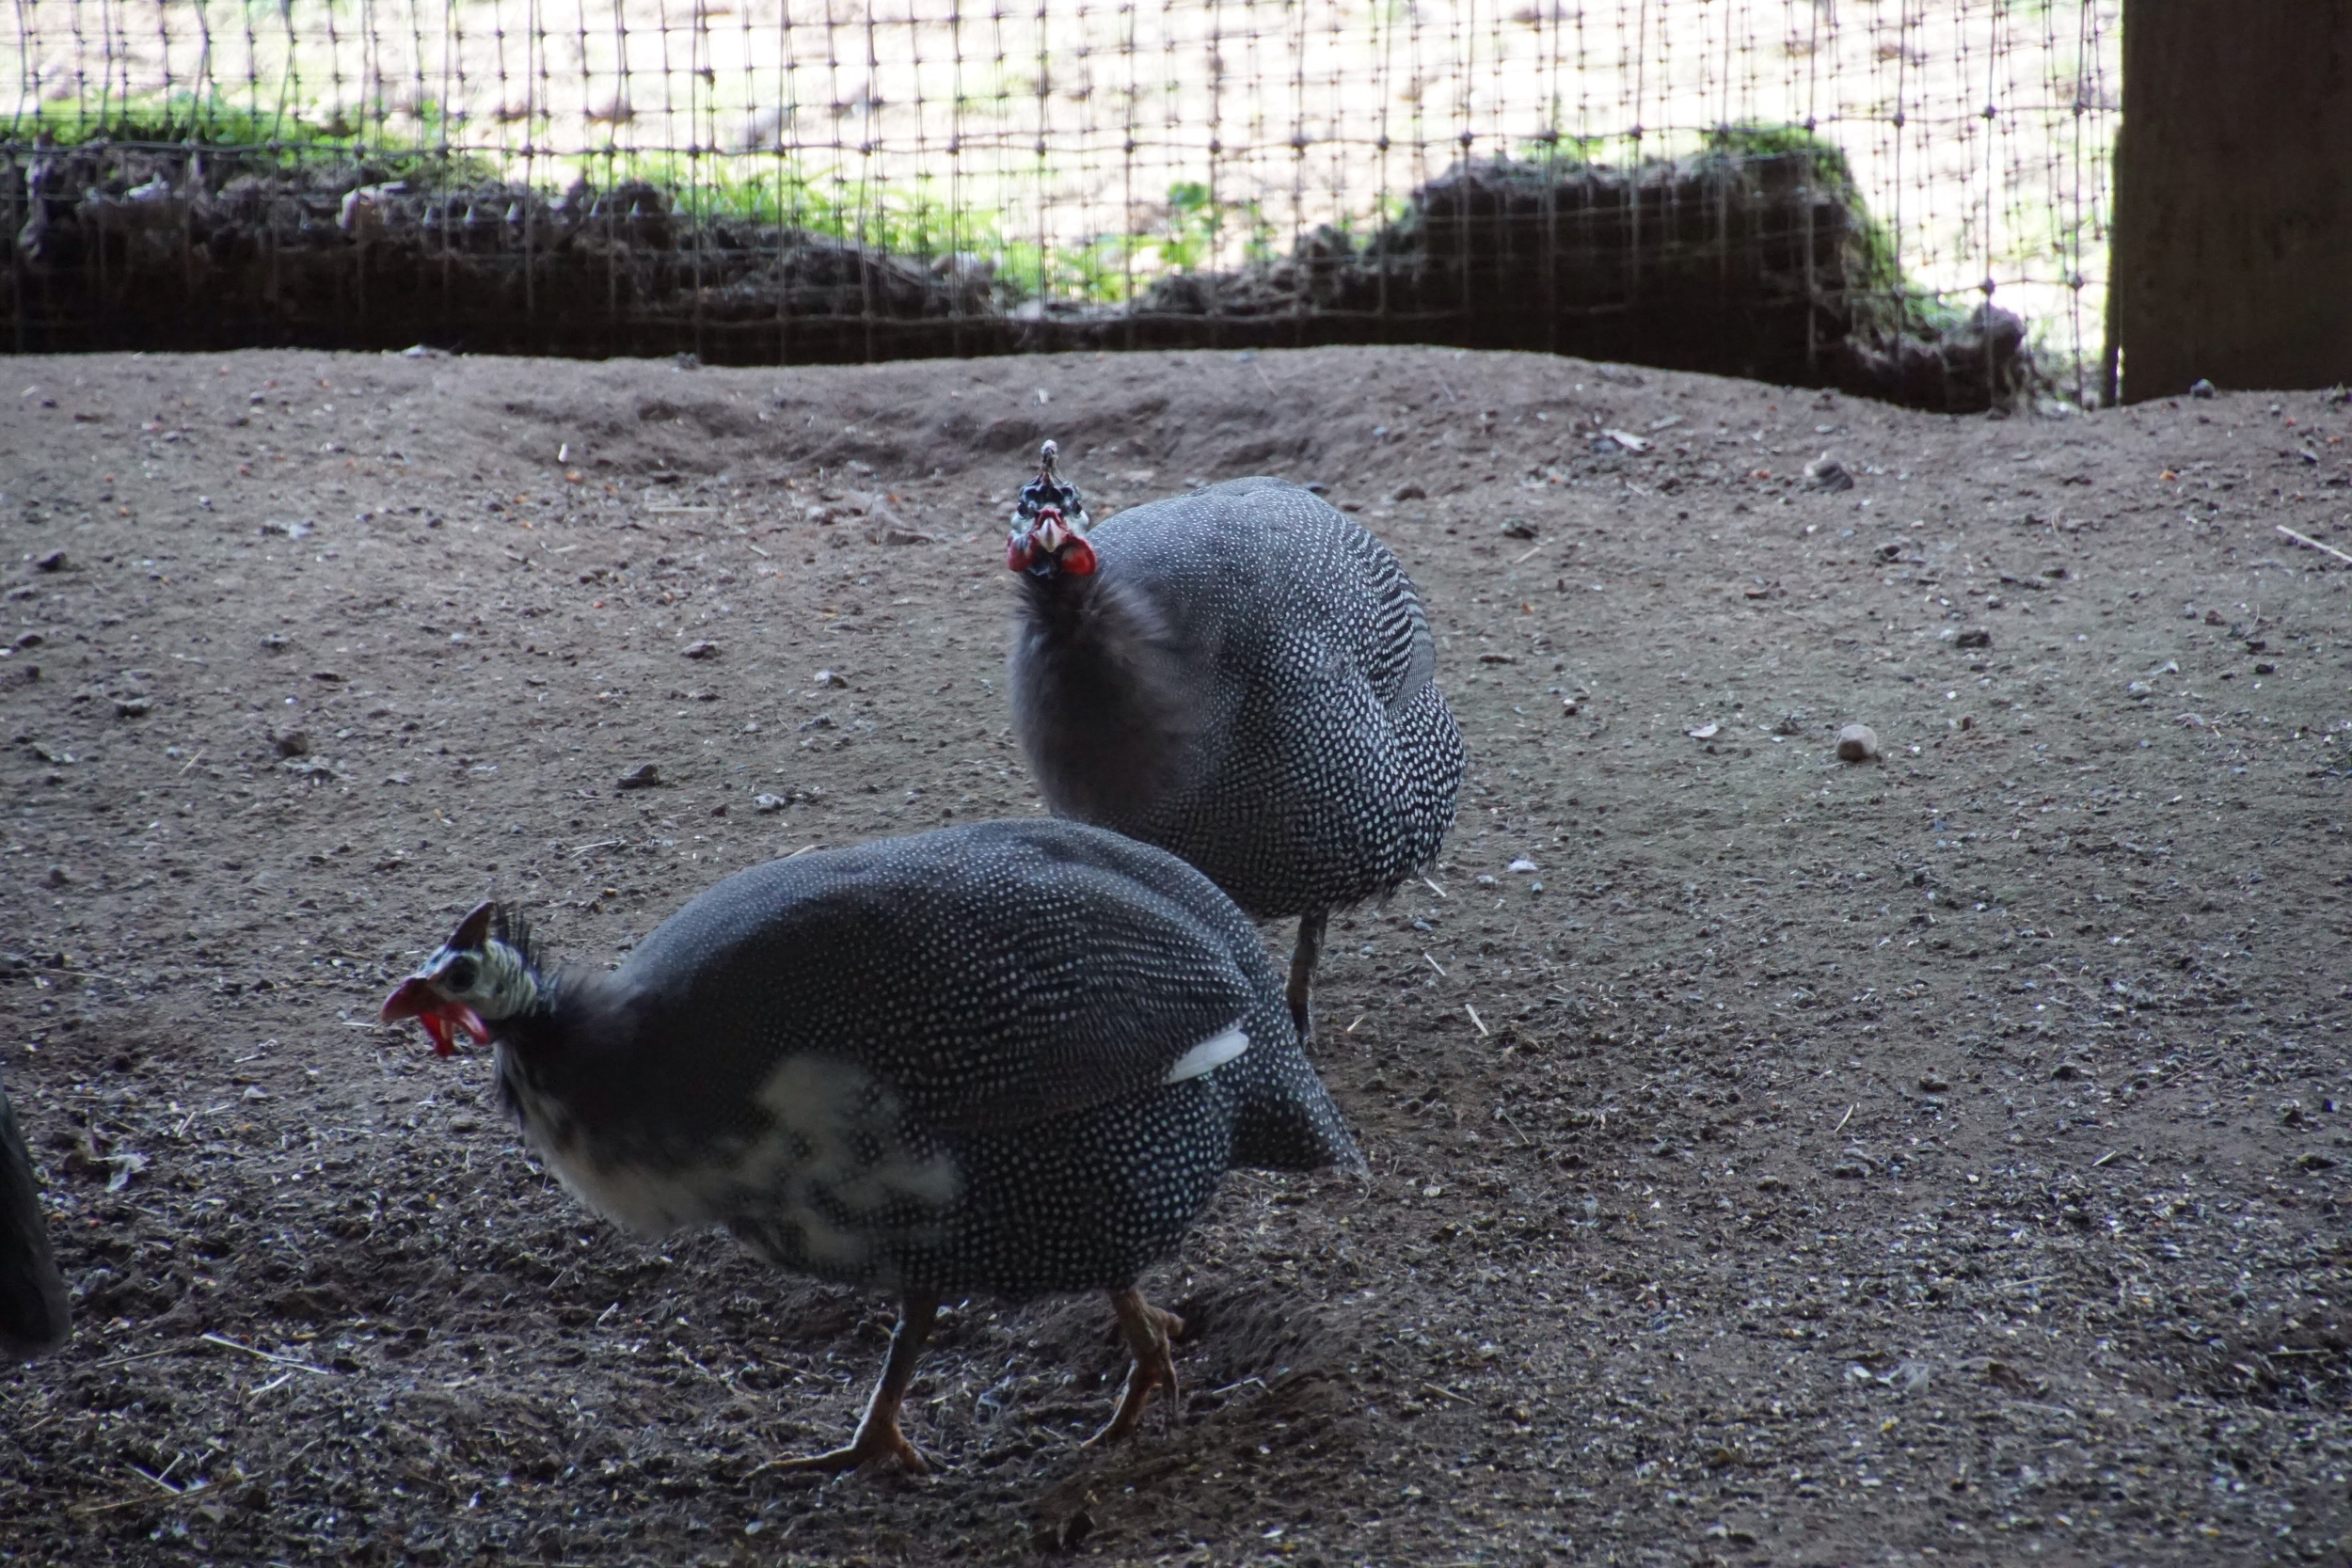 Guinea hens were supposed to eat ticks and scare rats away. We had guinea fowl, ticks and rats.